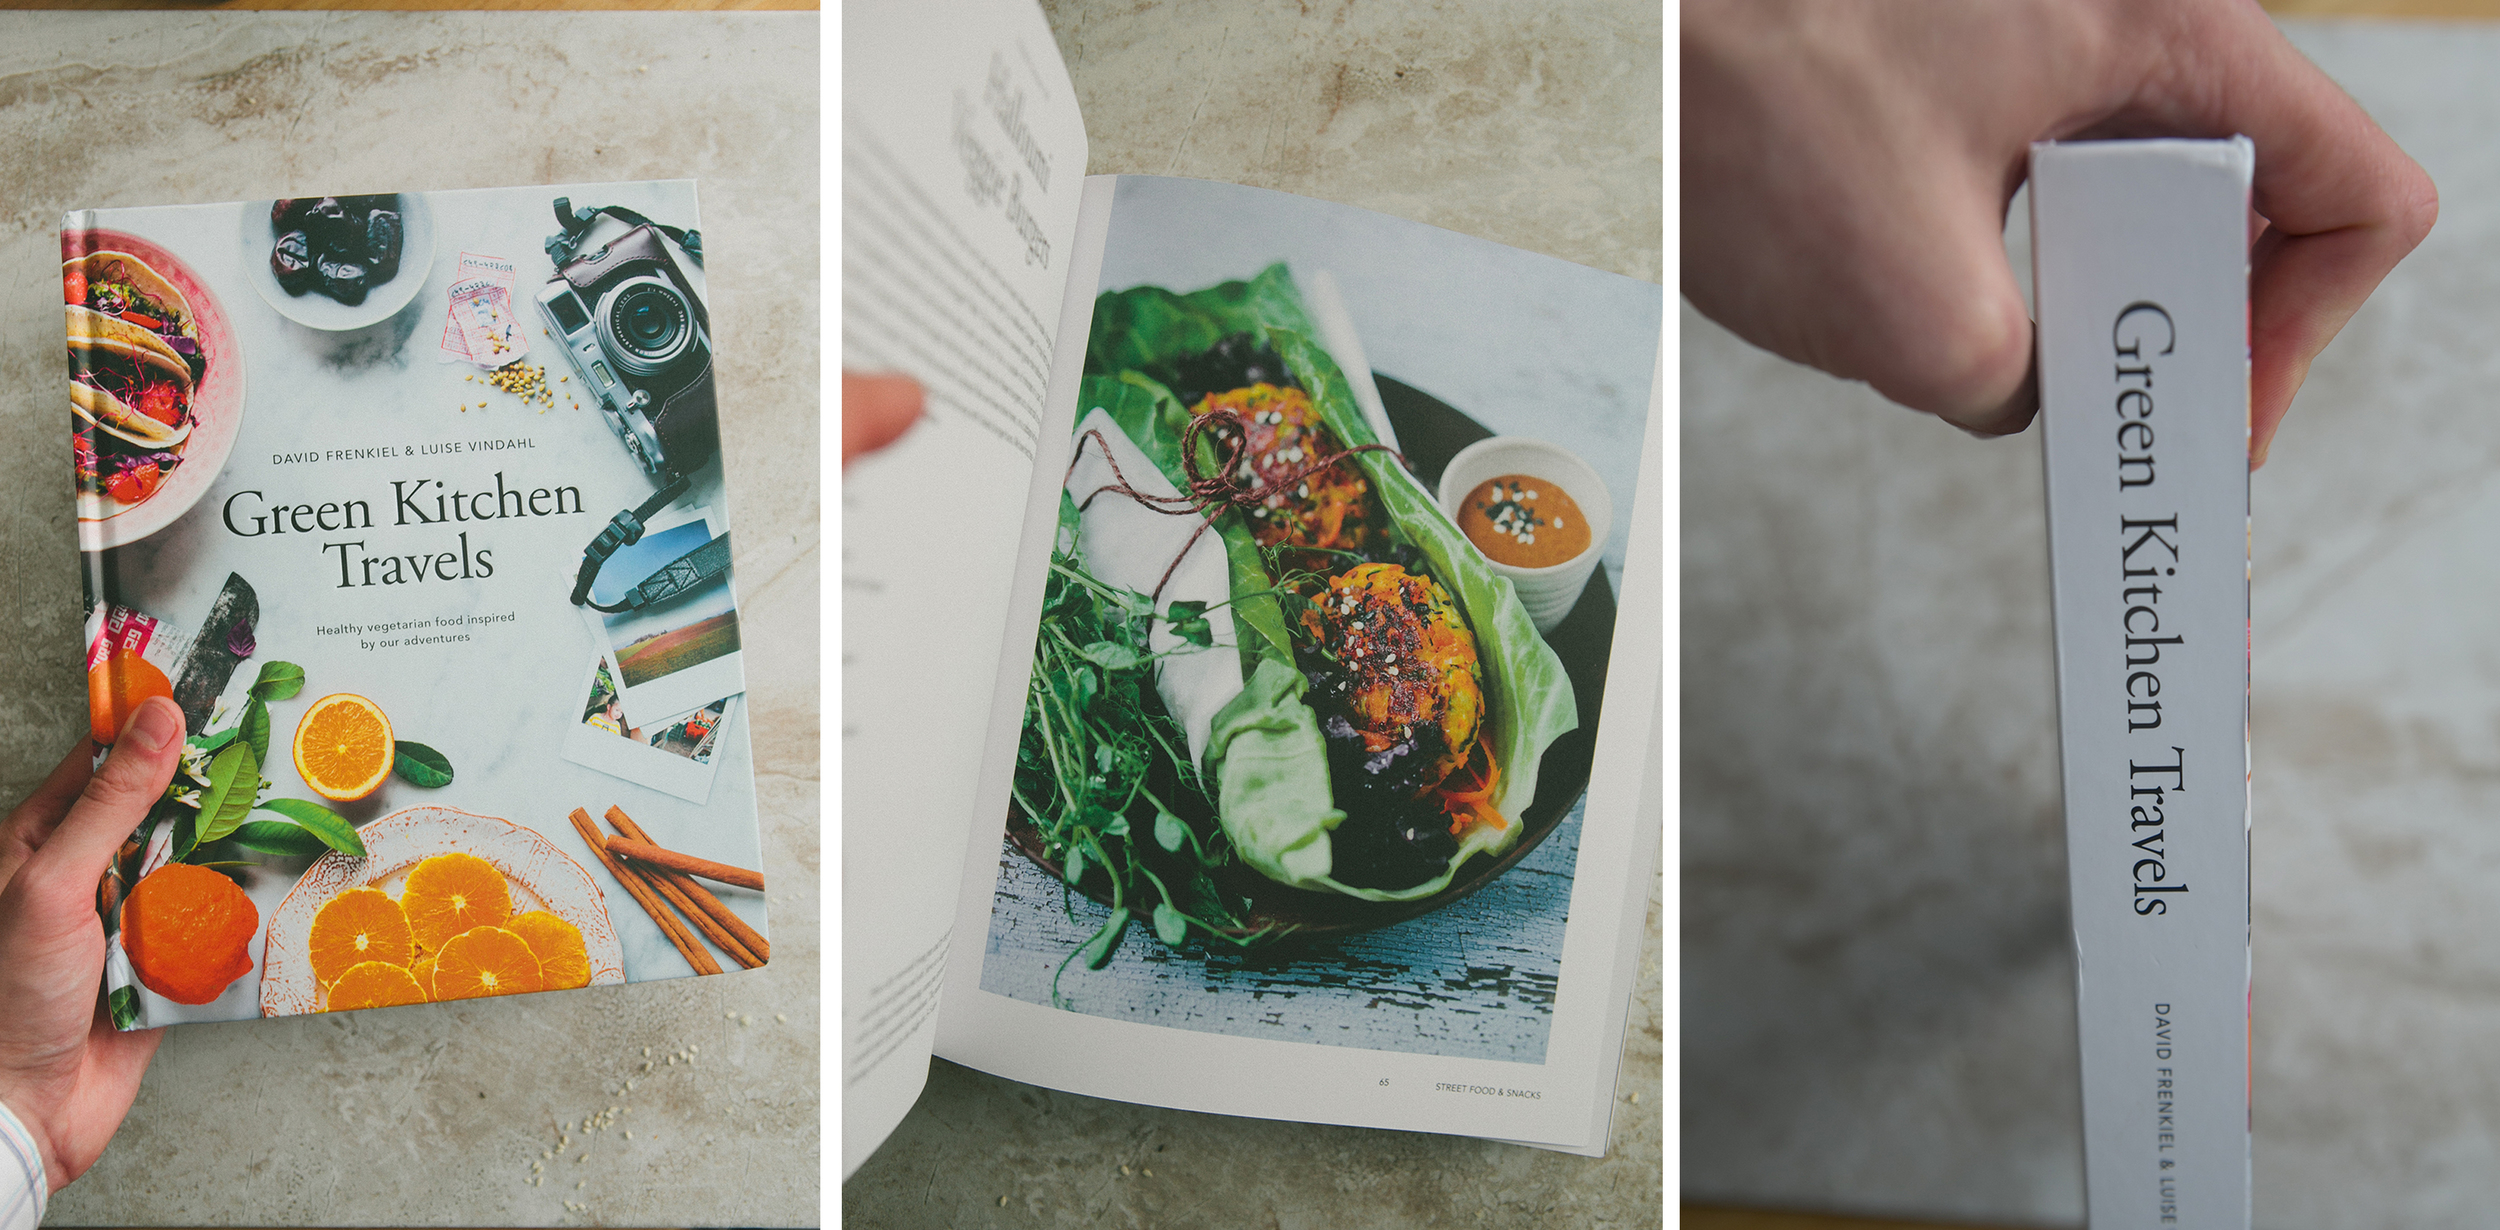 Luise Green Kitchen Stories Halloumi Veggie Burgers A Giveaway For Green Kitchen Travels A